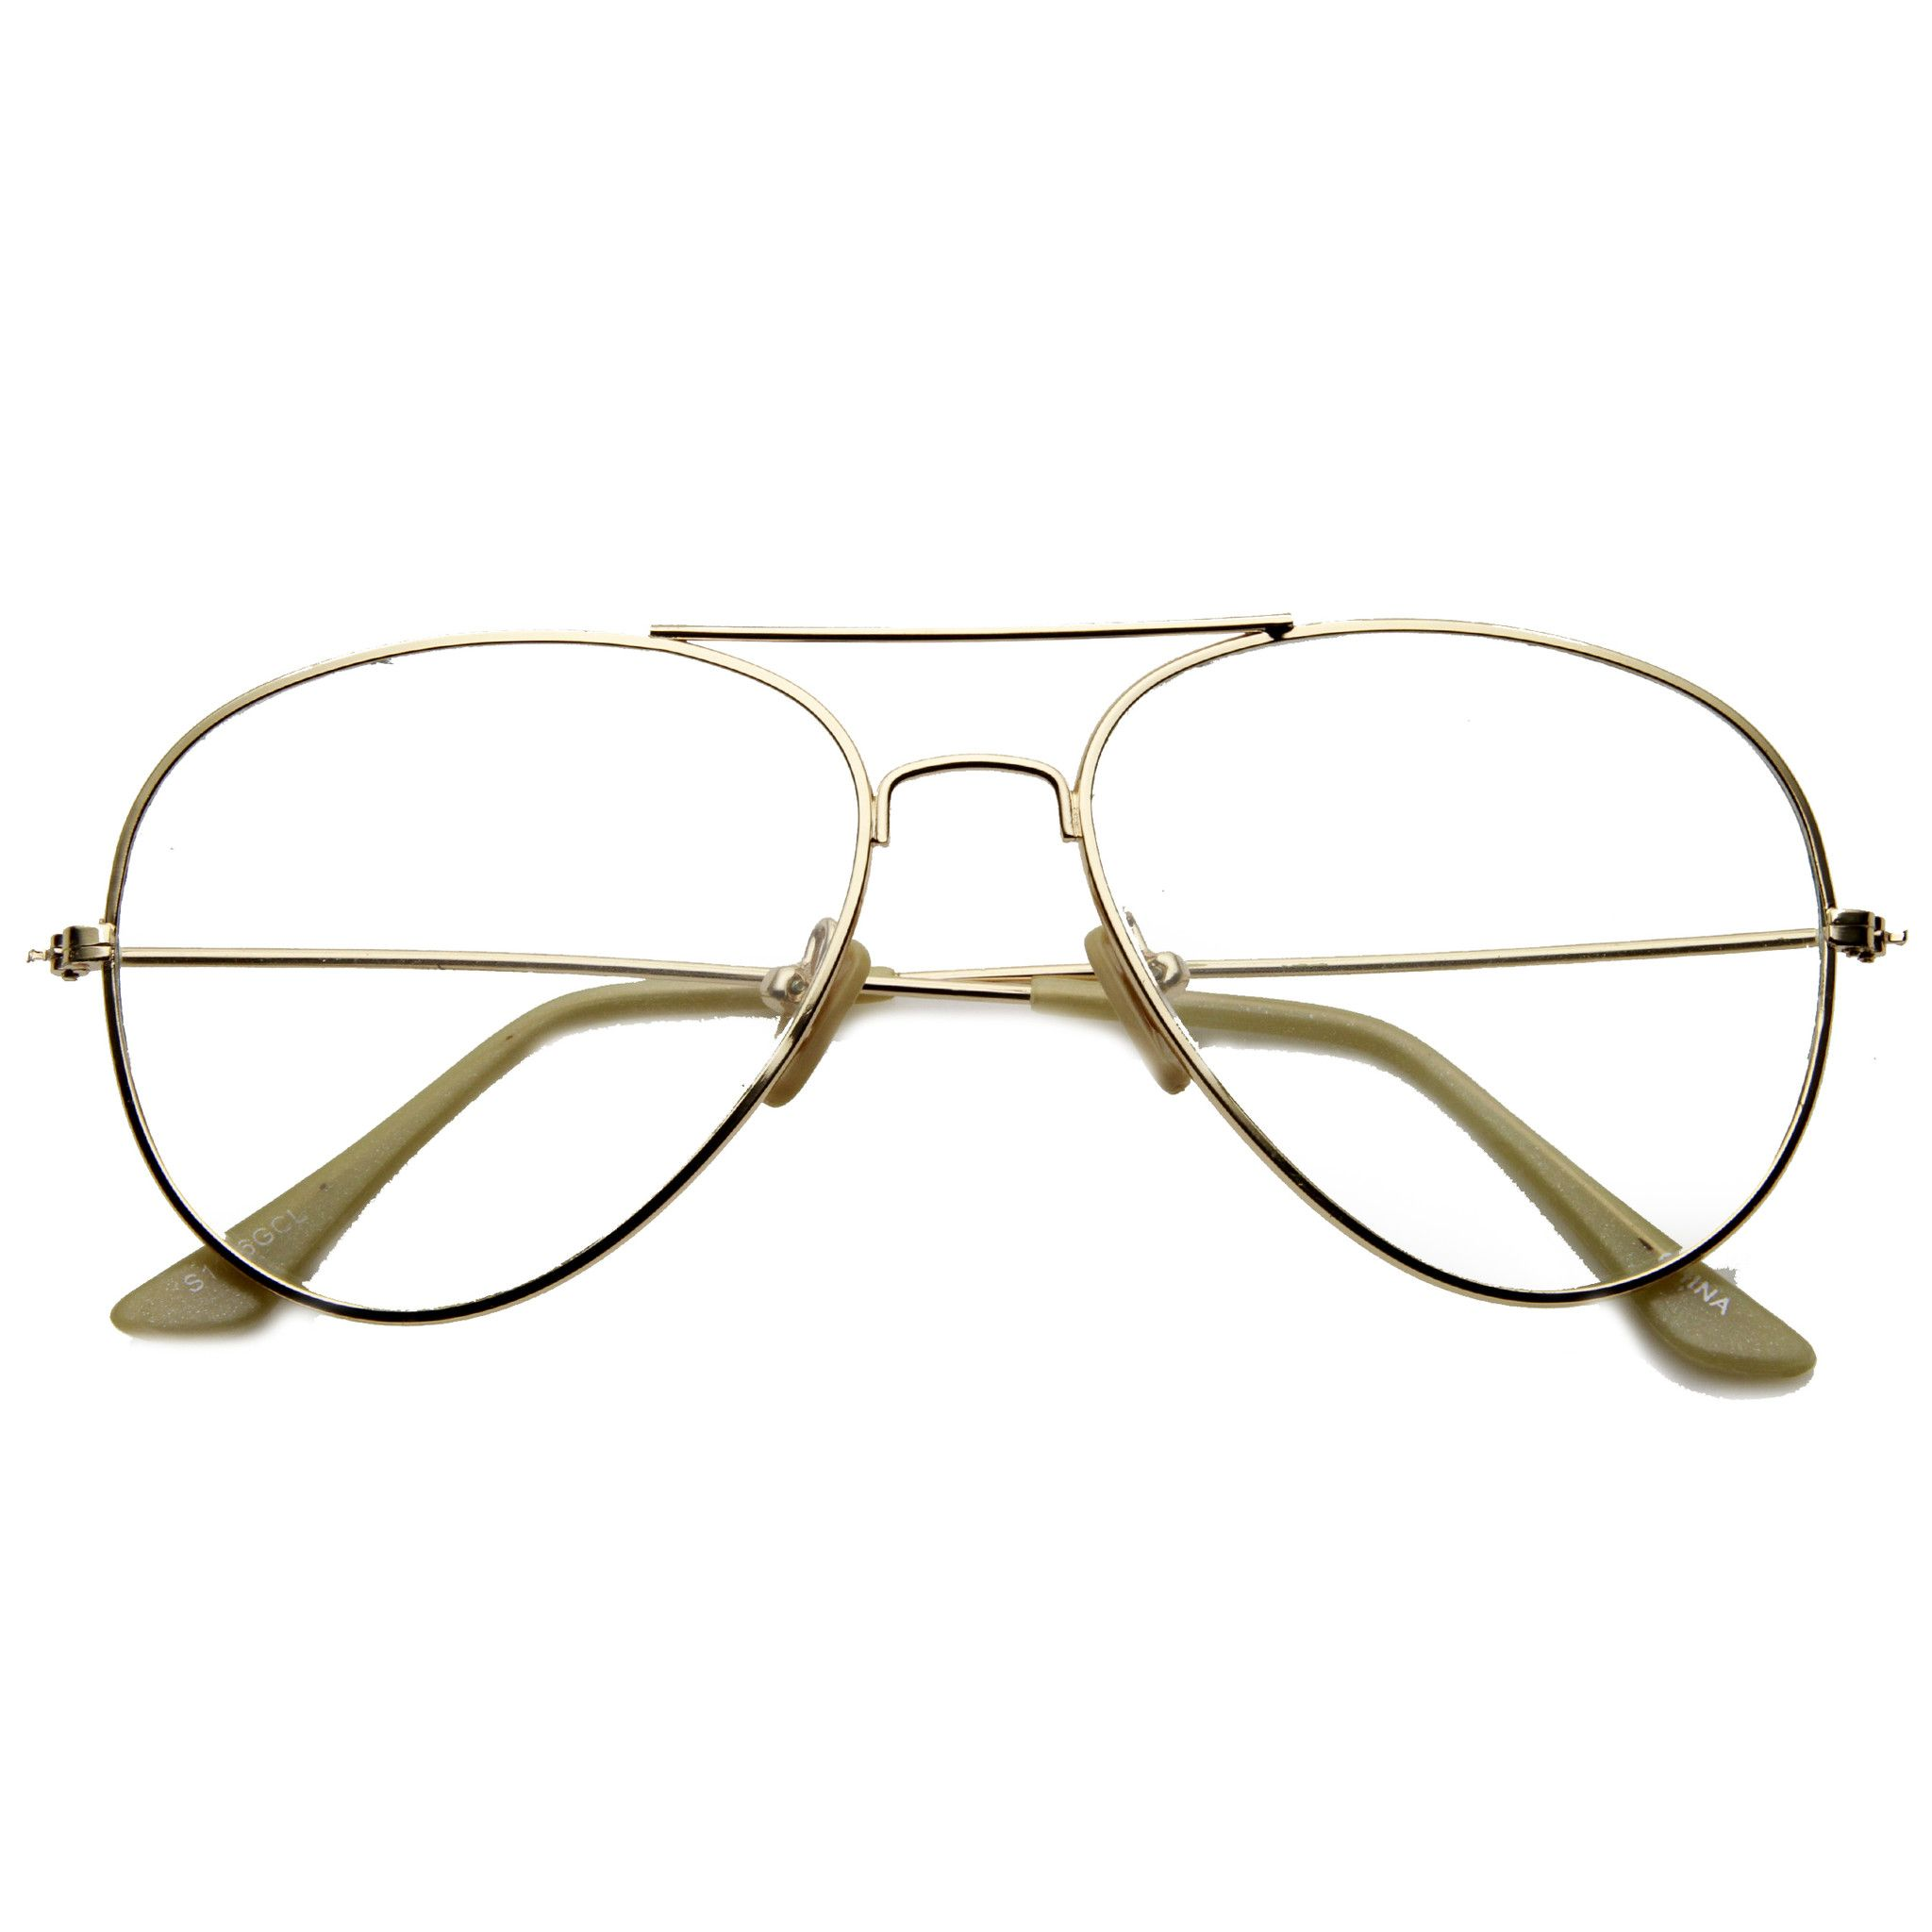 4919c94dd5fc Nickel Plated Tear Drop Wire Frame Basic Metal Clear Lens Aviator Glasses  #frame #clear #bold #summer #sunglass #oversized #cateye #sunglasses  #mirrored # ...